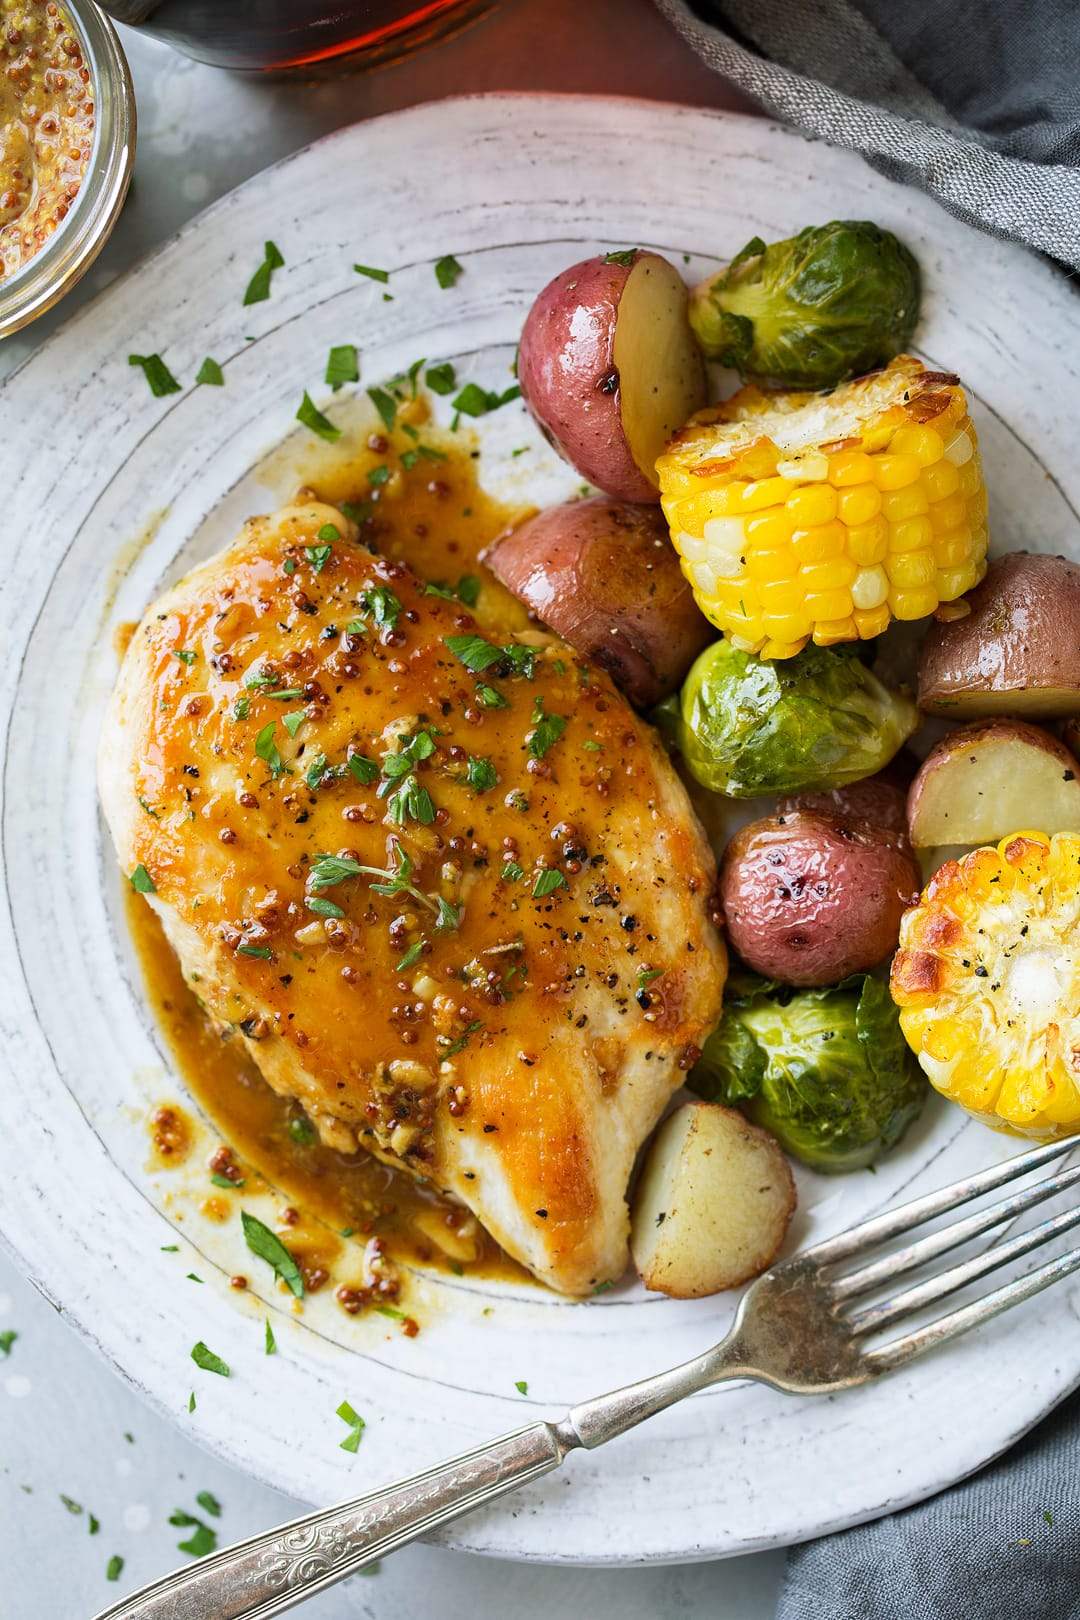 Maple Mustard Skillet Chicken single serving on plate with a side of vegetables.